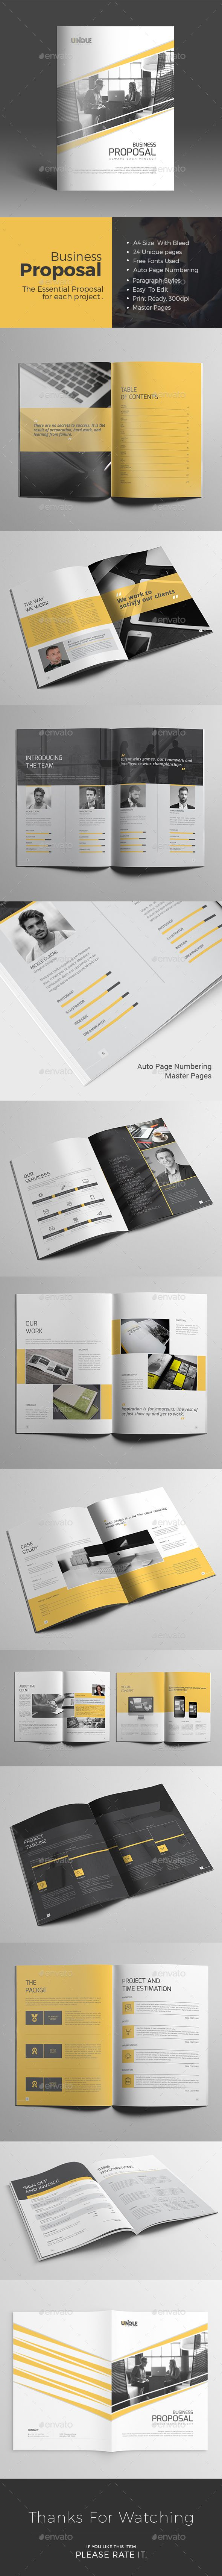 This is a 24 pages In design u201cBusiness